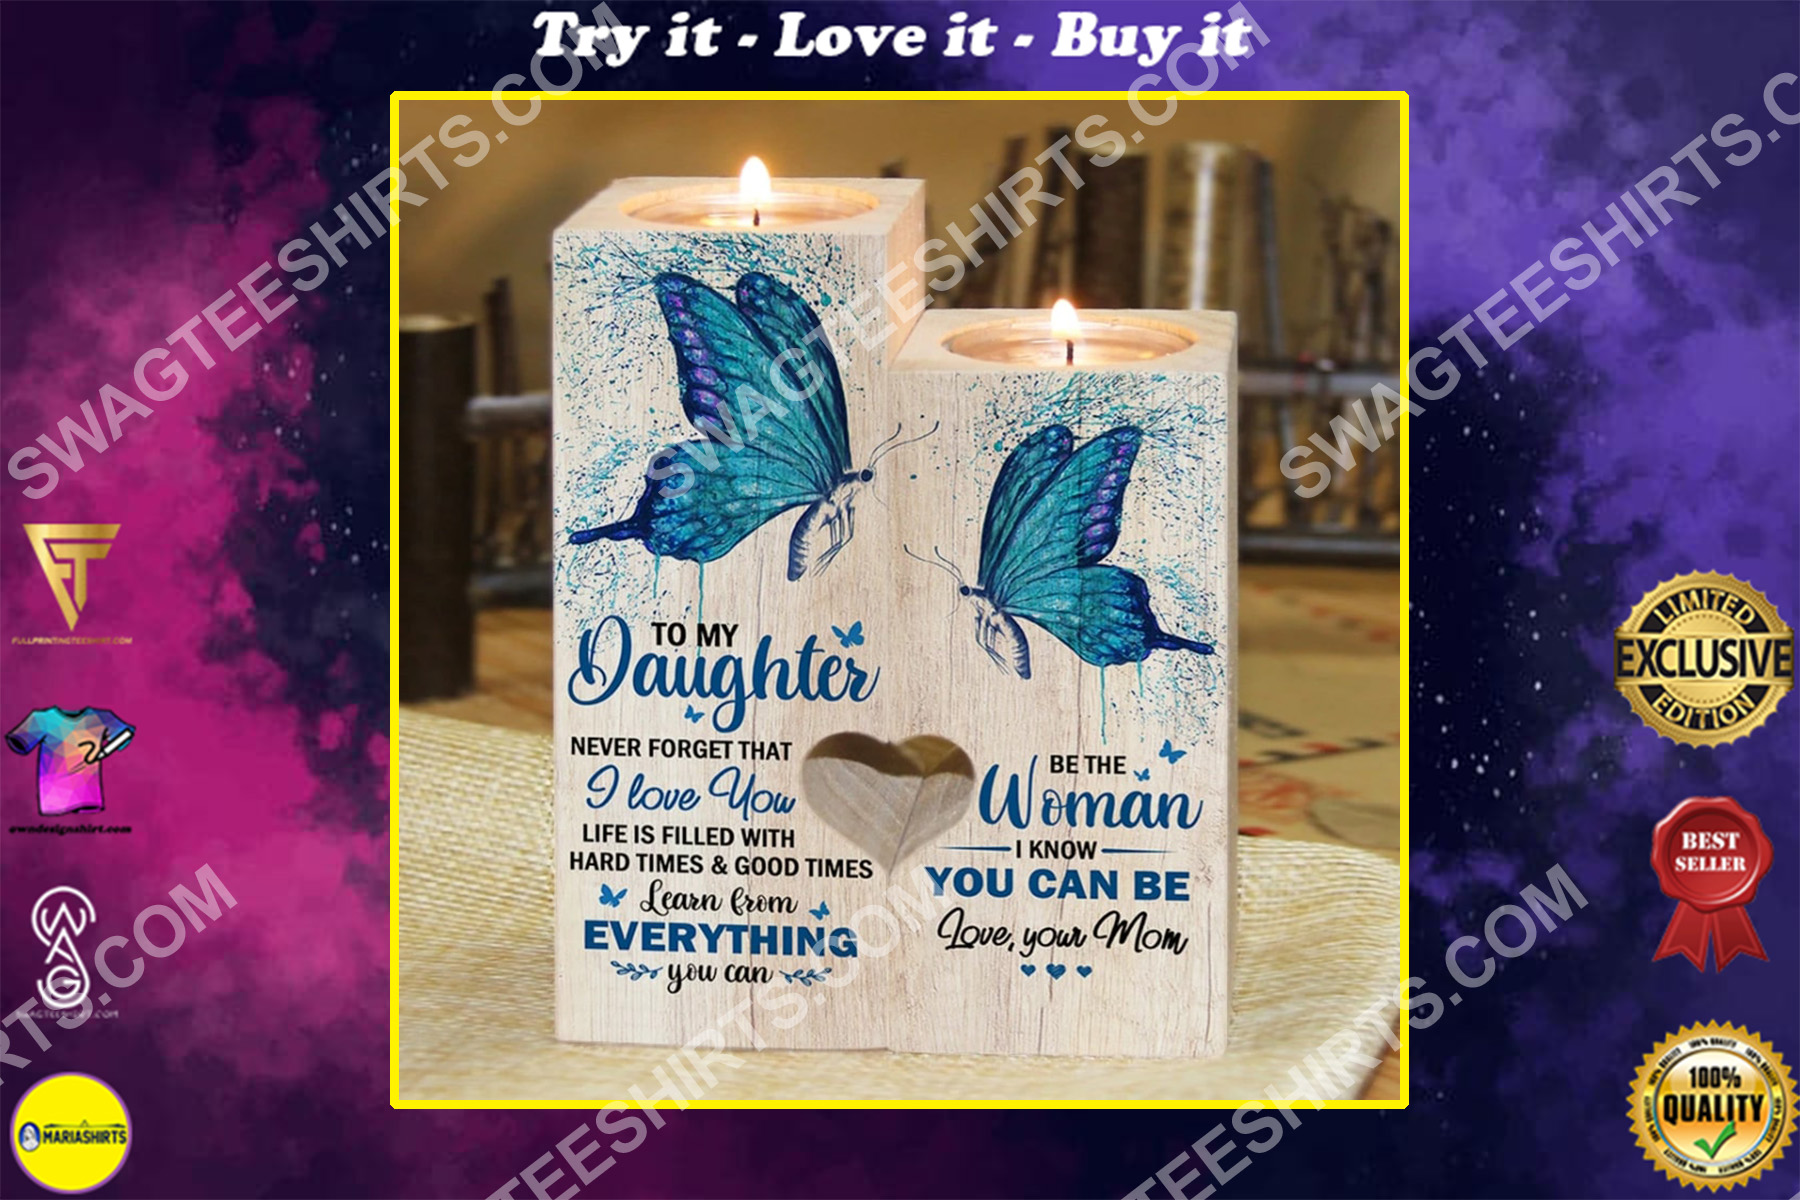 butterfly to my daughter be the woman i know you can be your mom candle holder